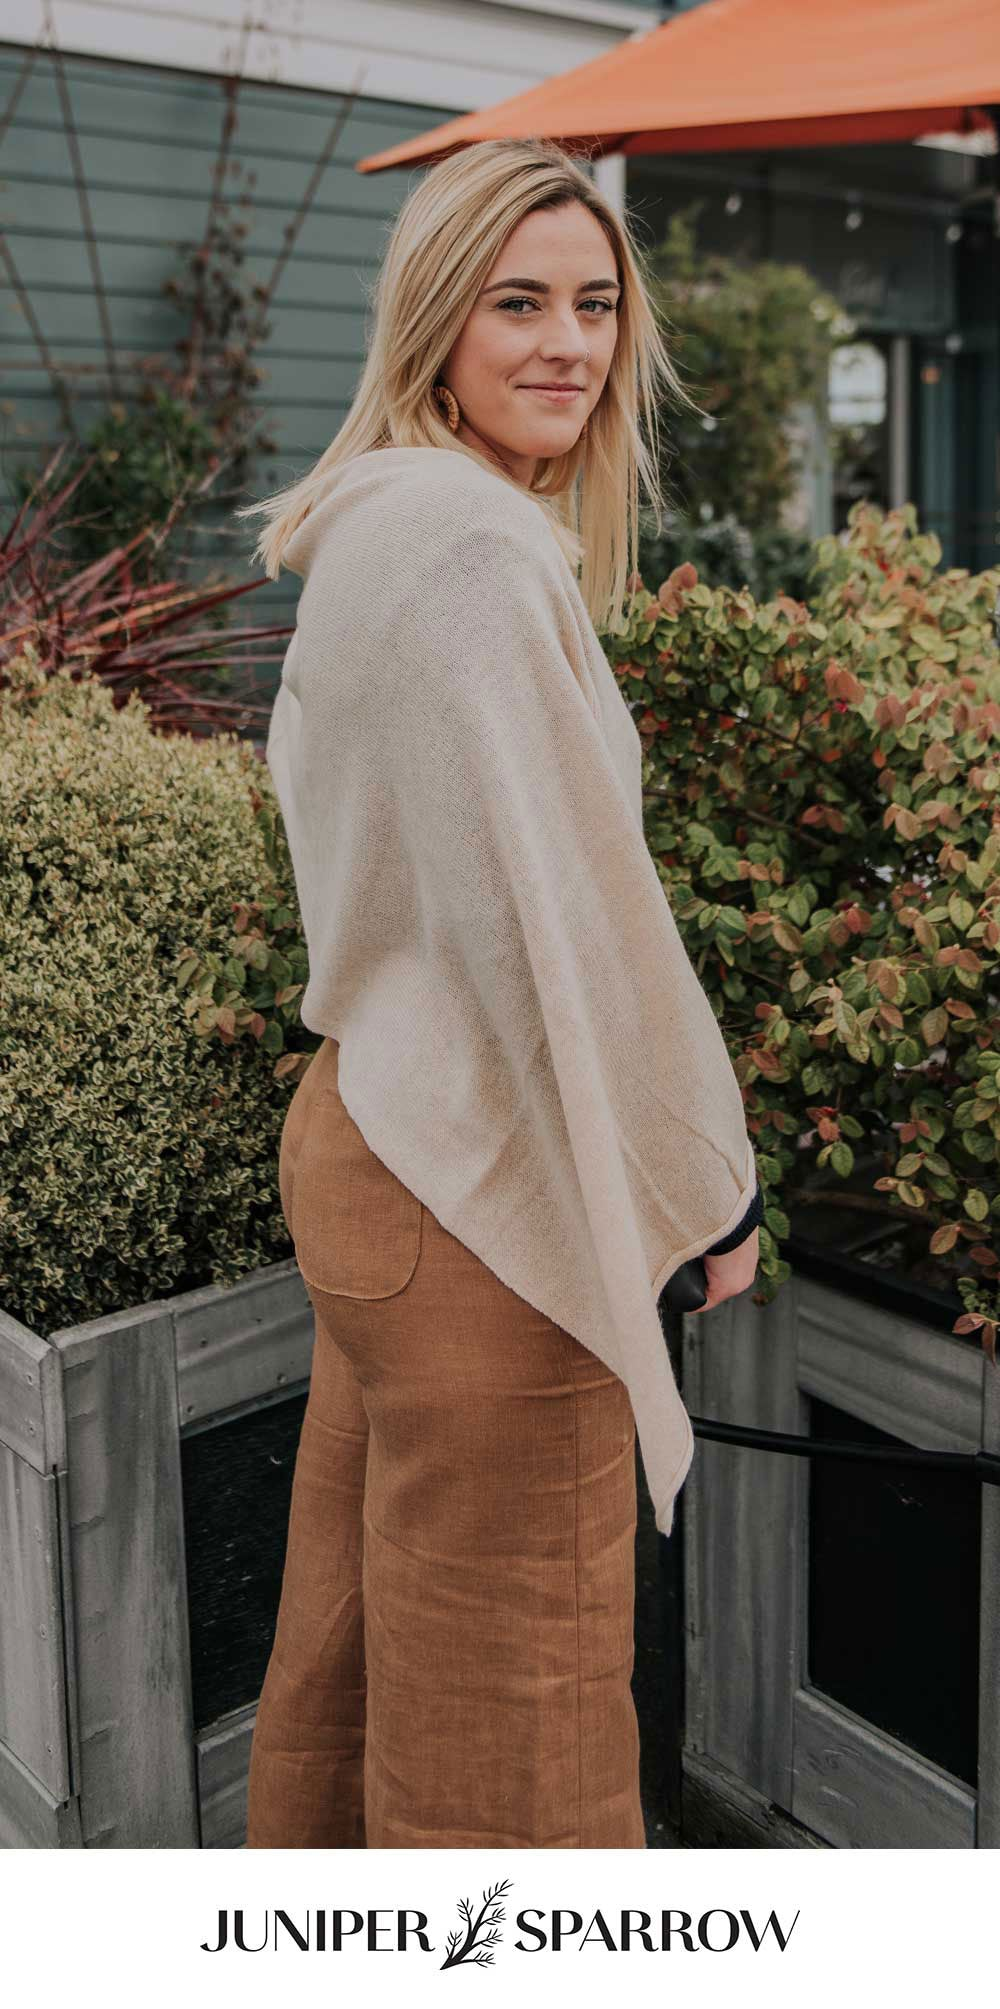 Juniper brunch pant in ginger with draped cashmere